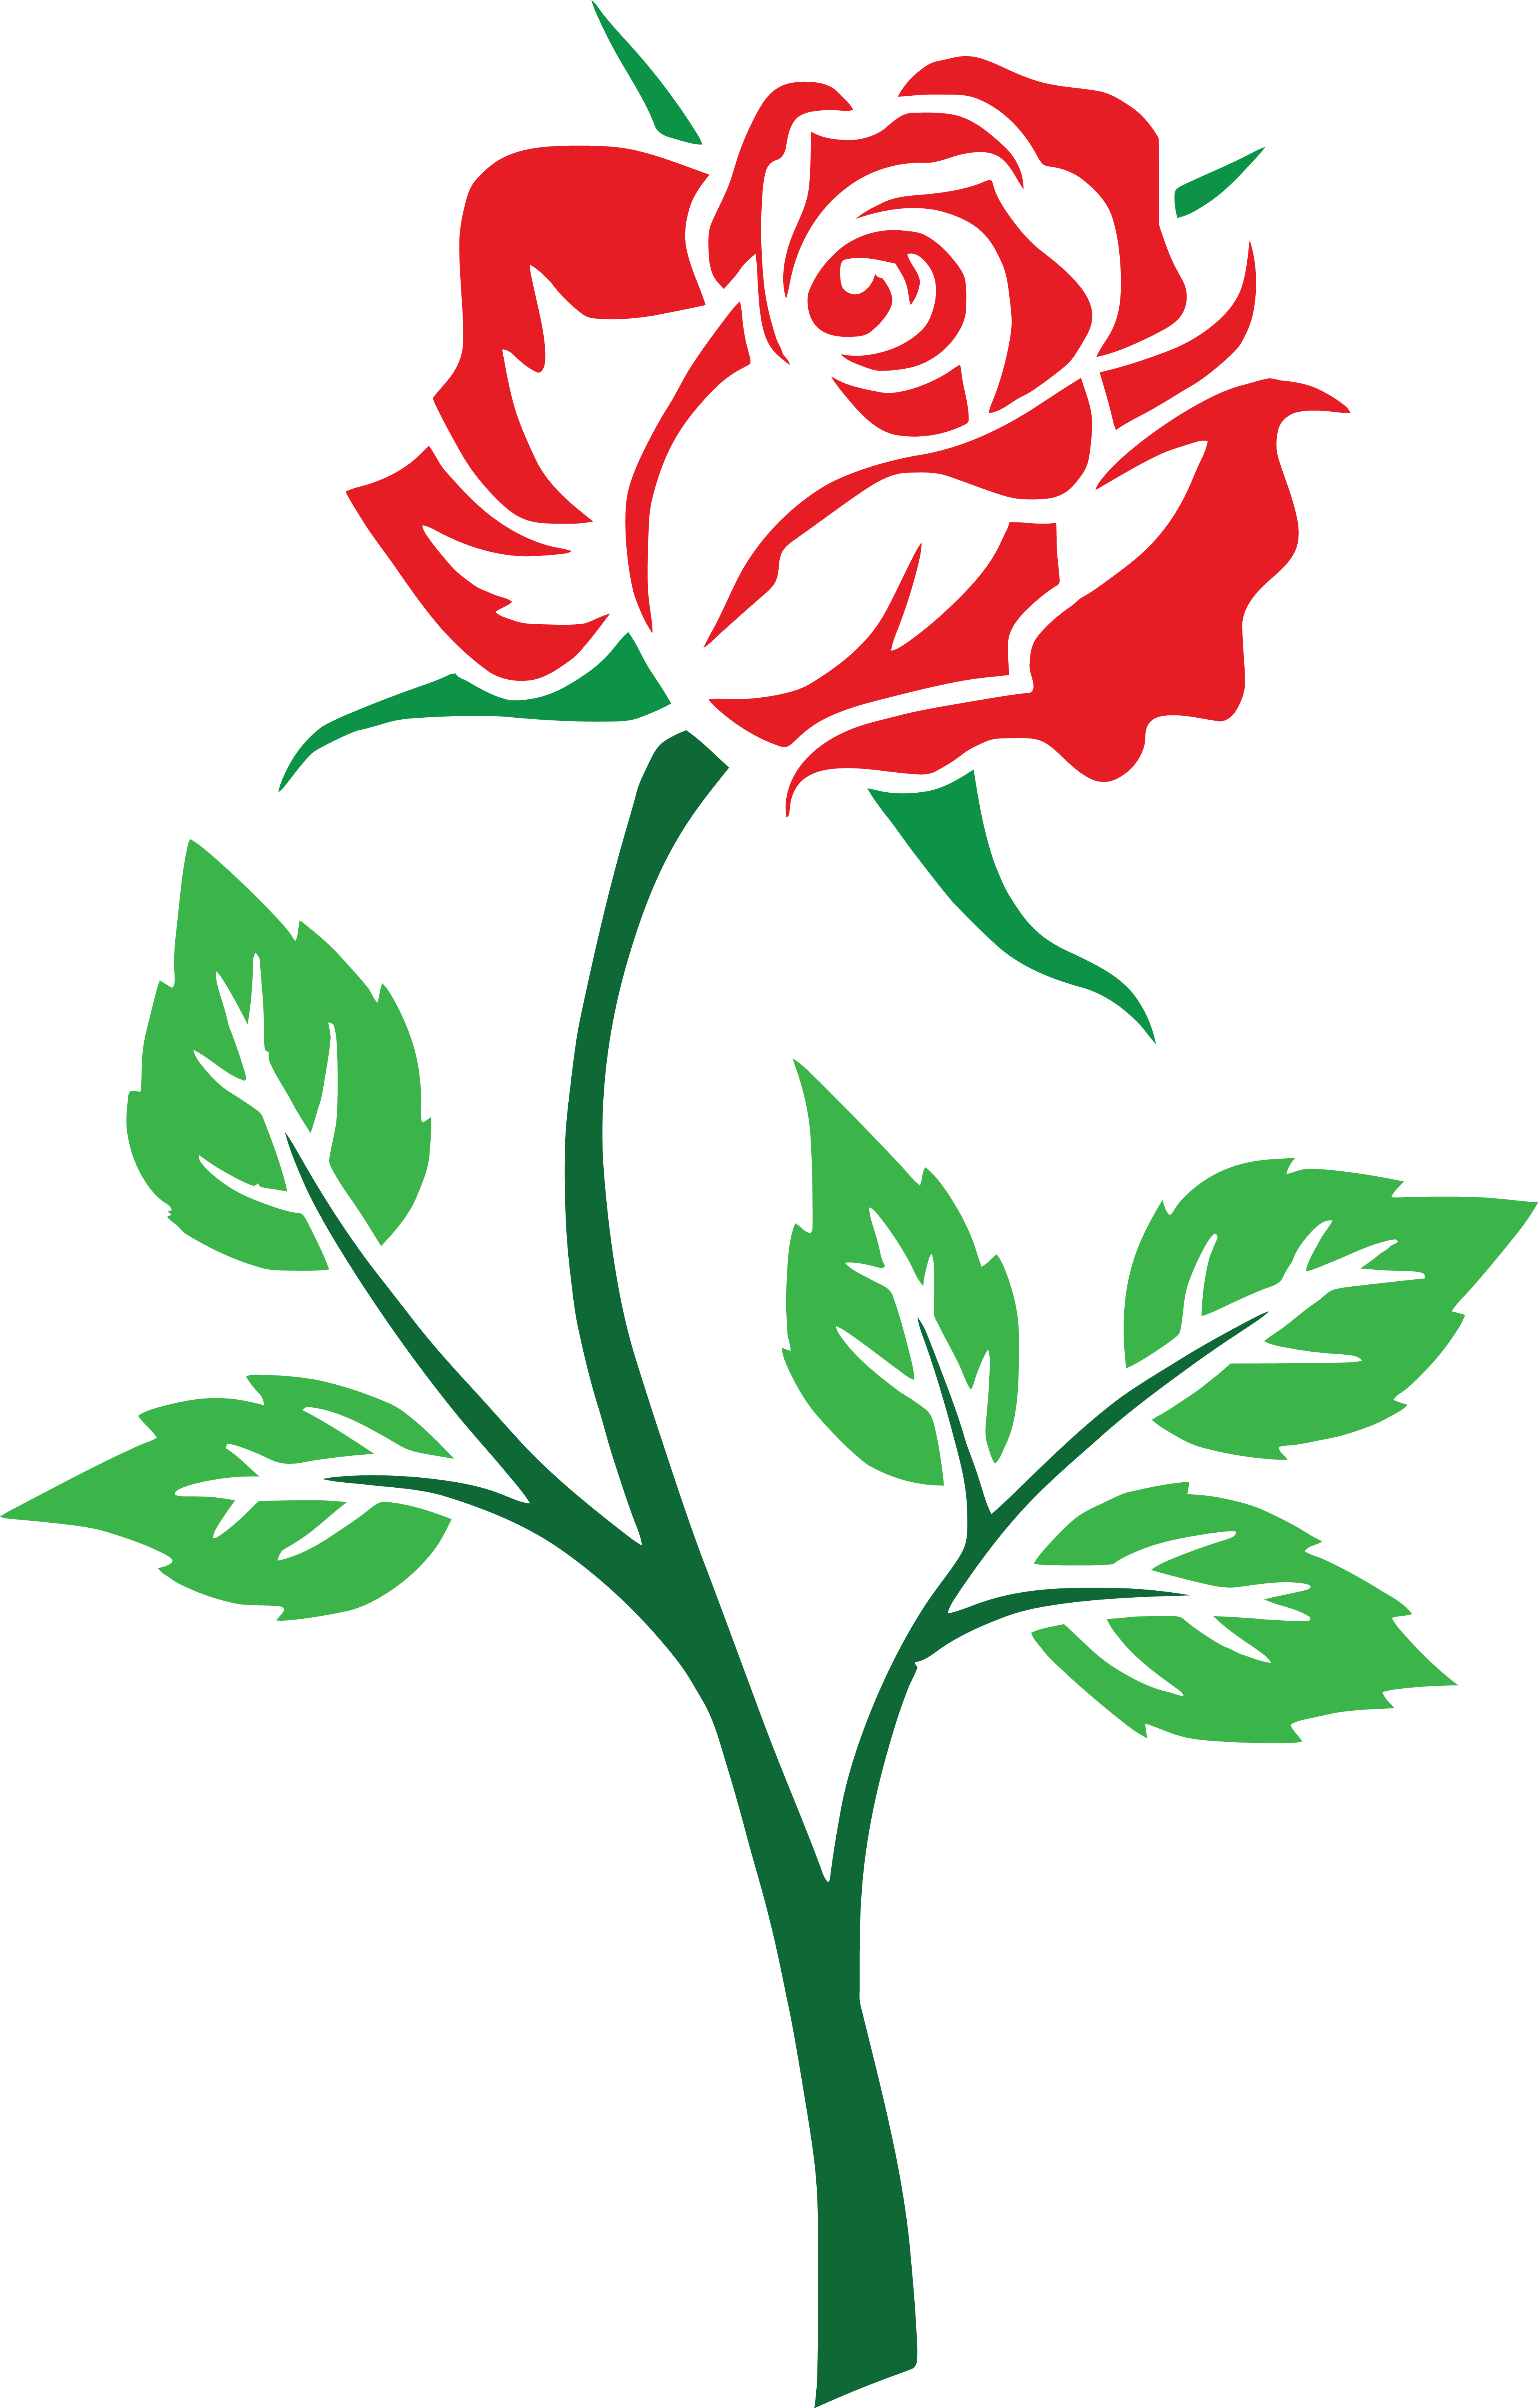 Free Clipart Of A red rose.